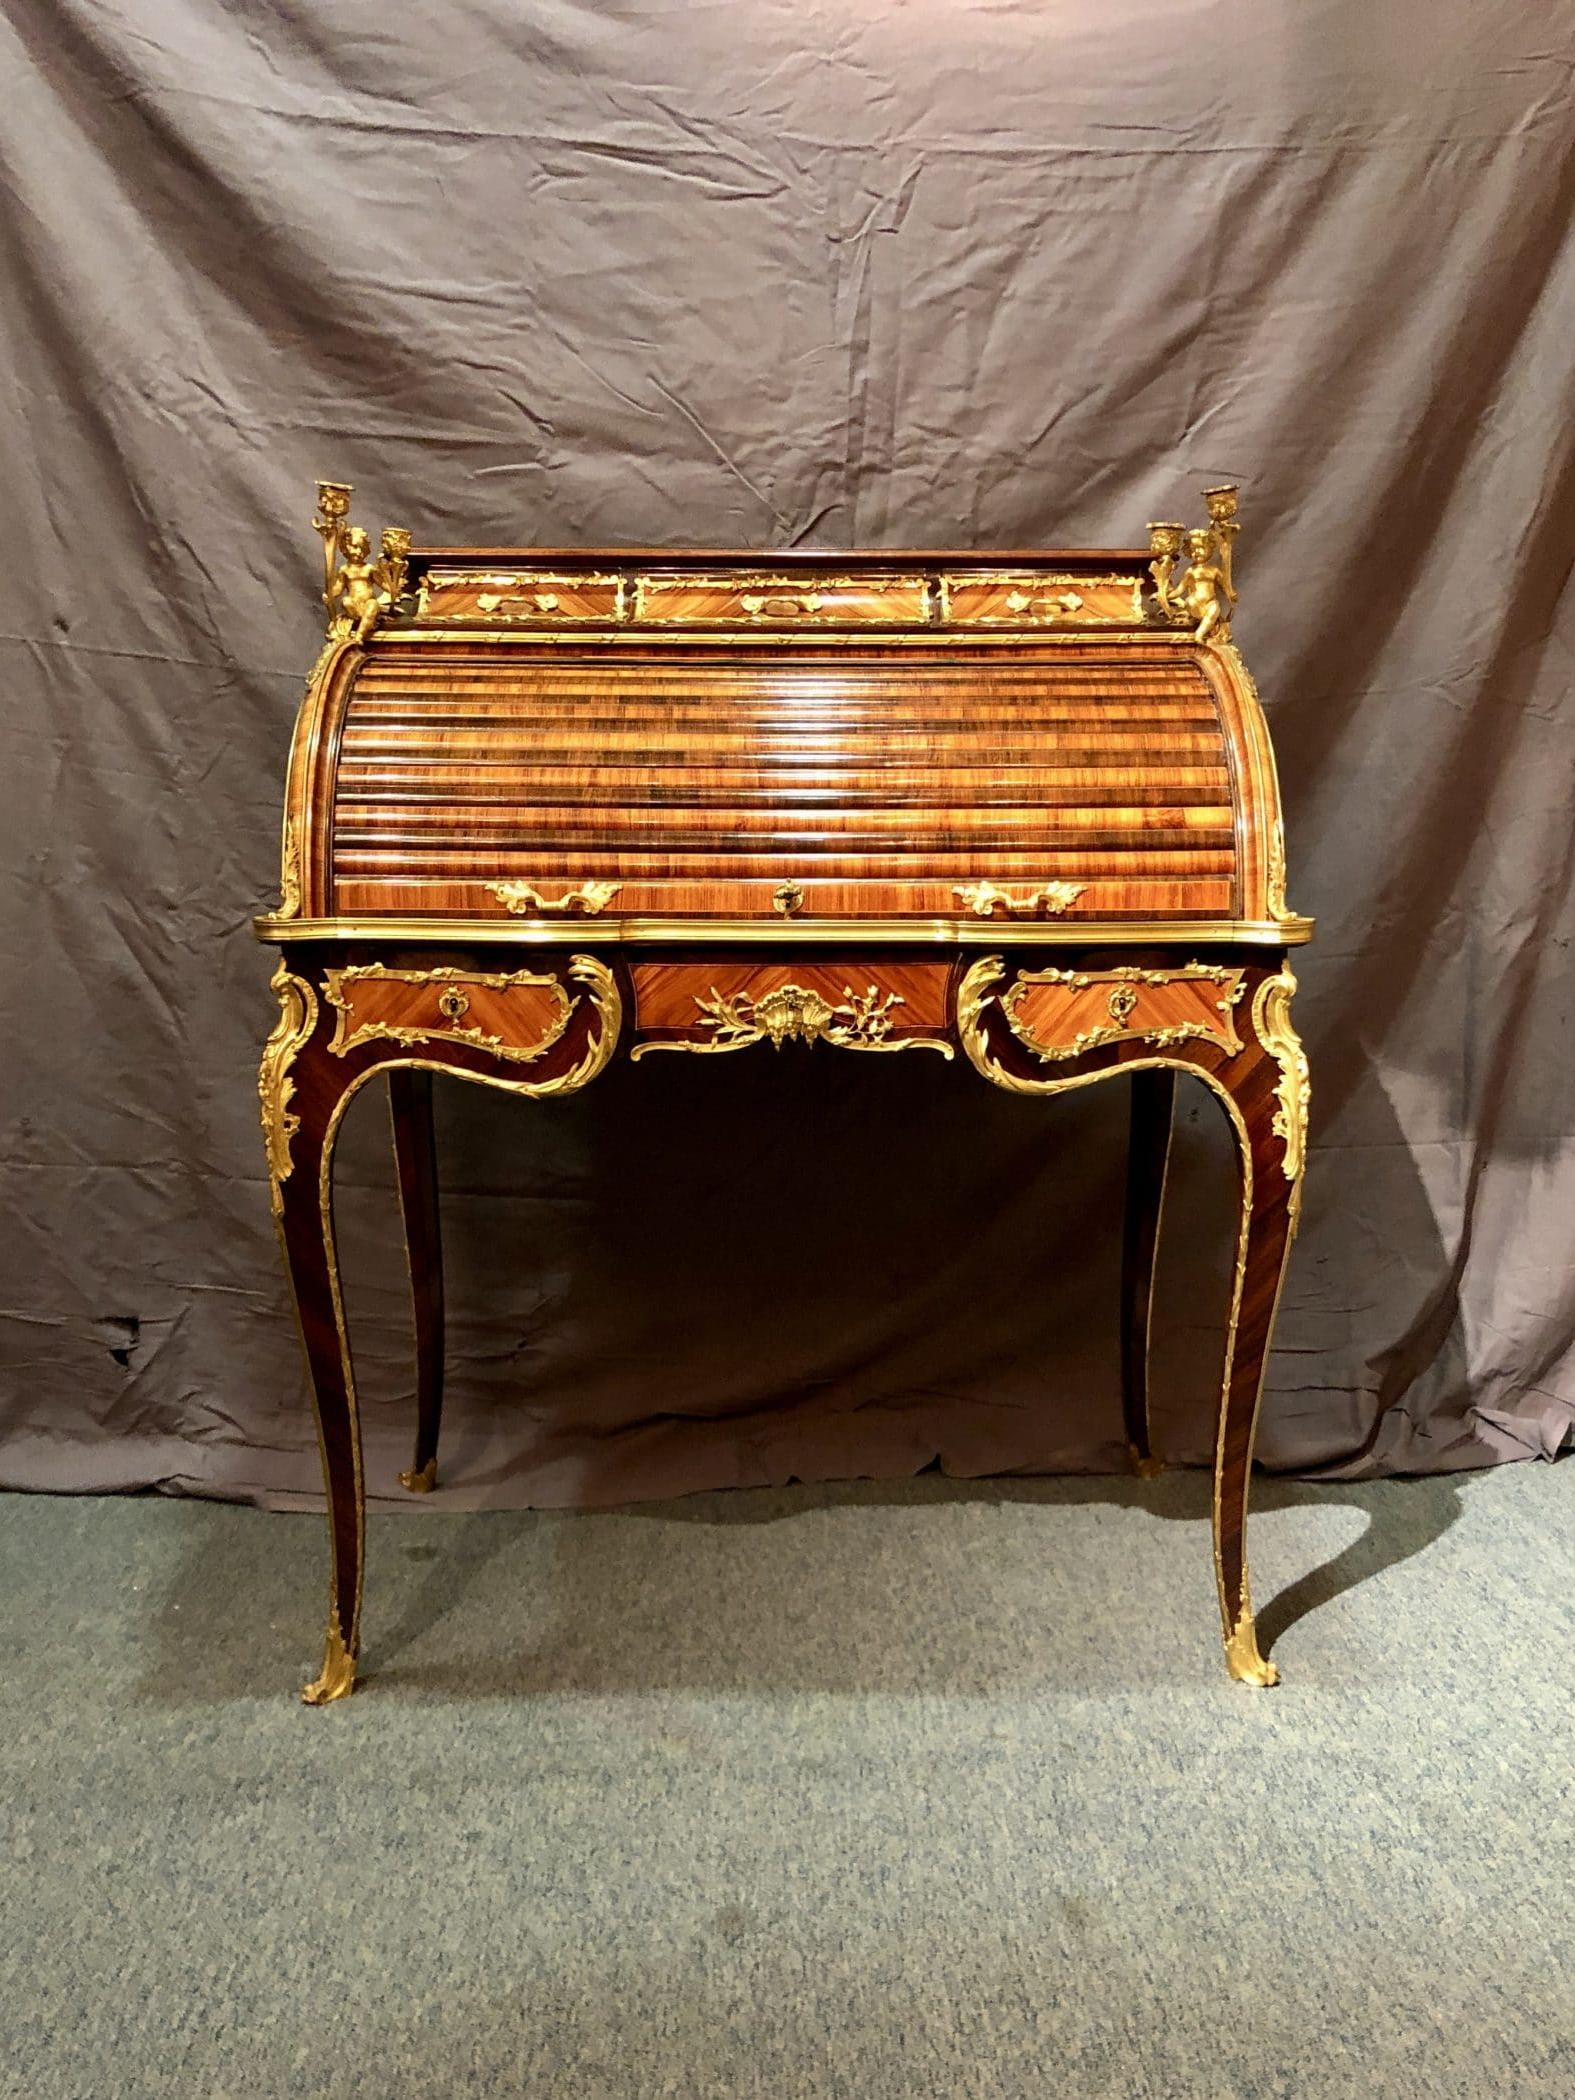 French Cylinder-Curtain Desk, circa 1830. Stamp of Charles-Guillaume WINCKELSEN (1812 - 1871)